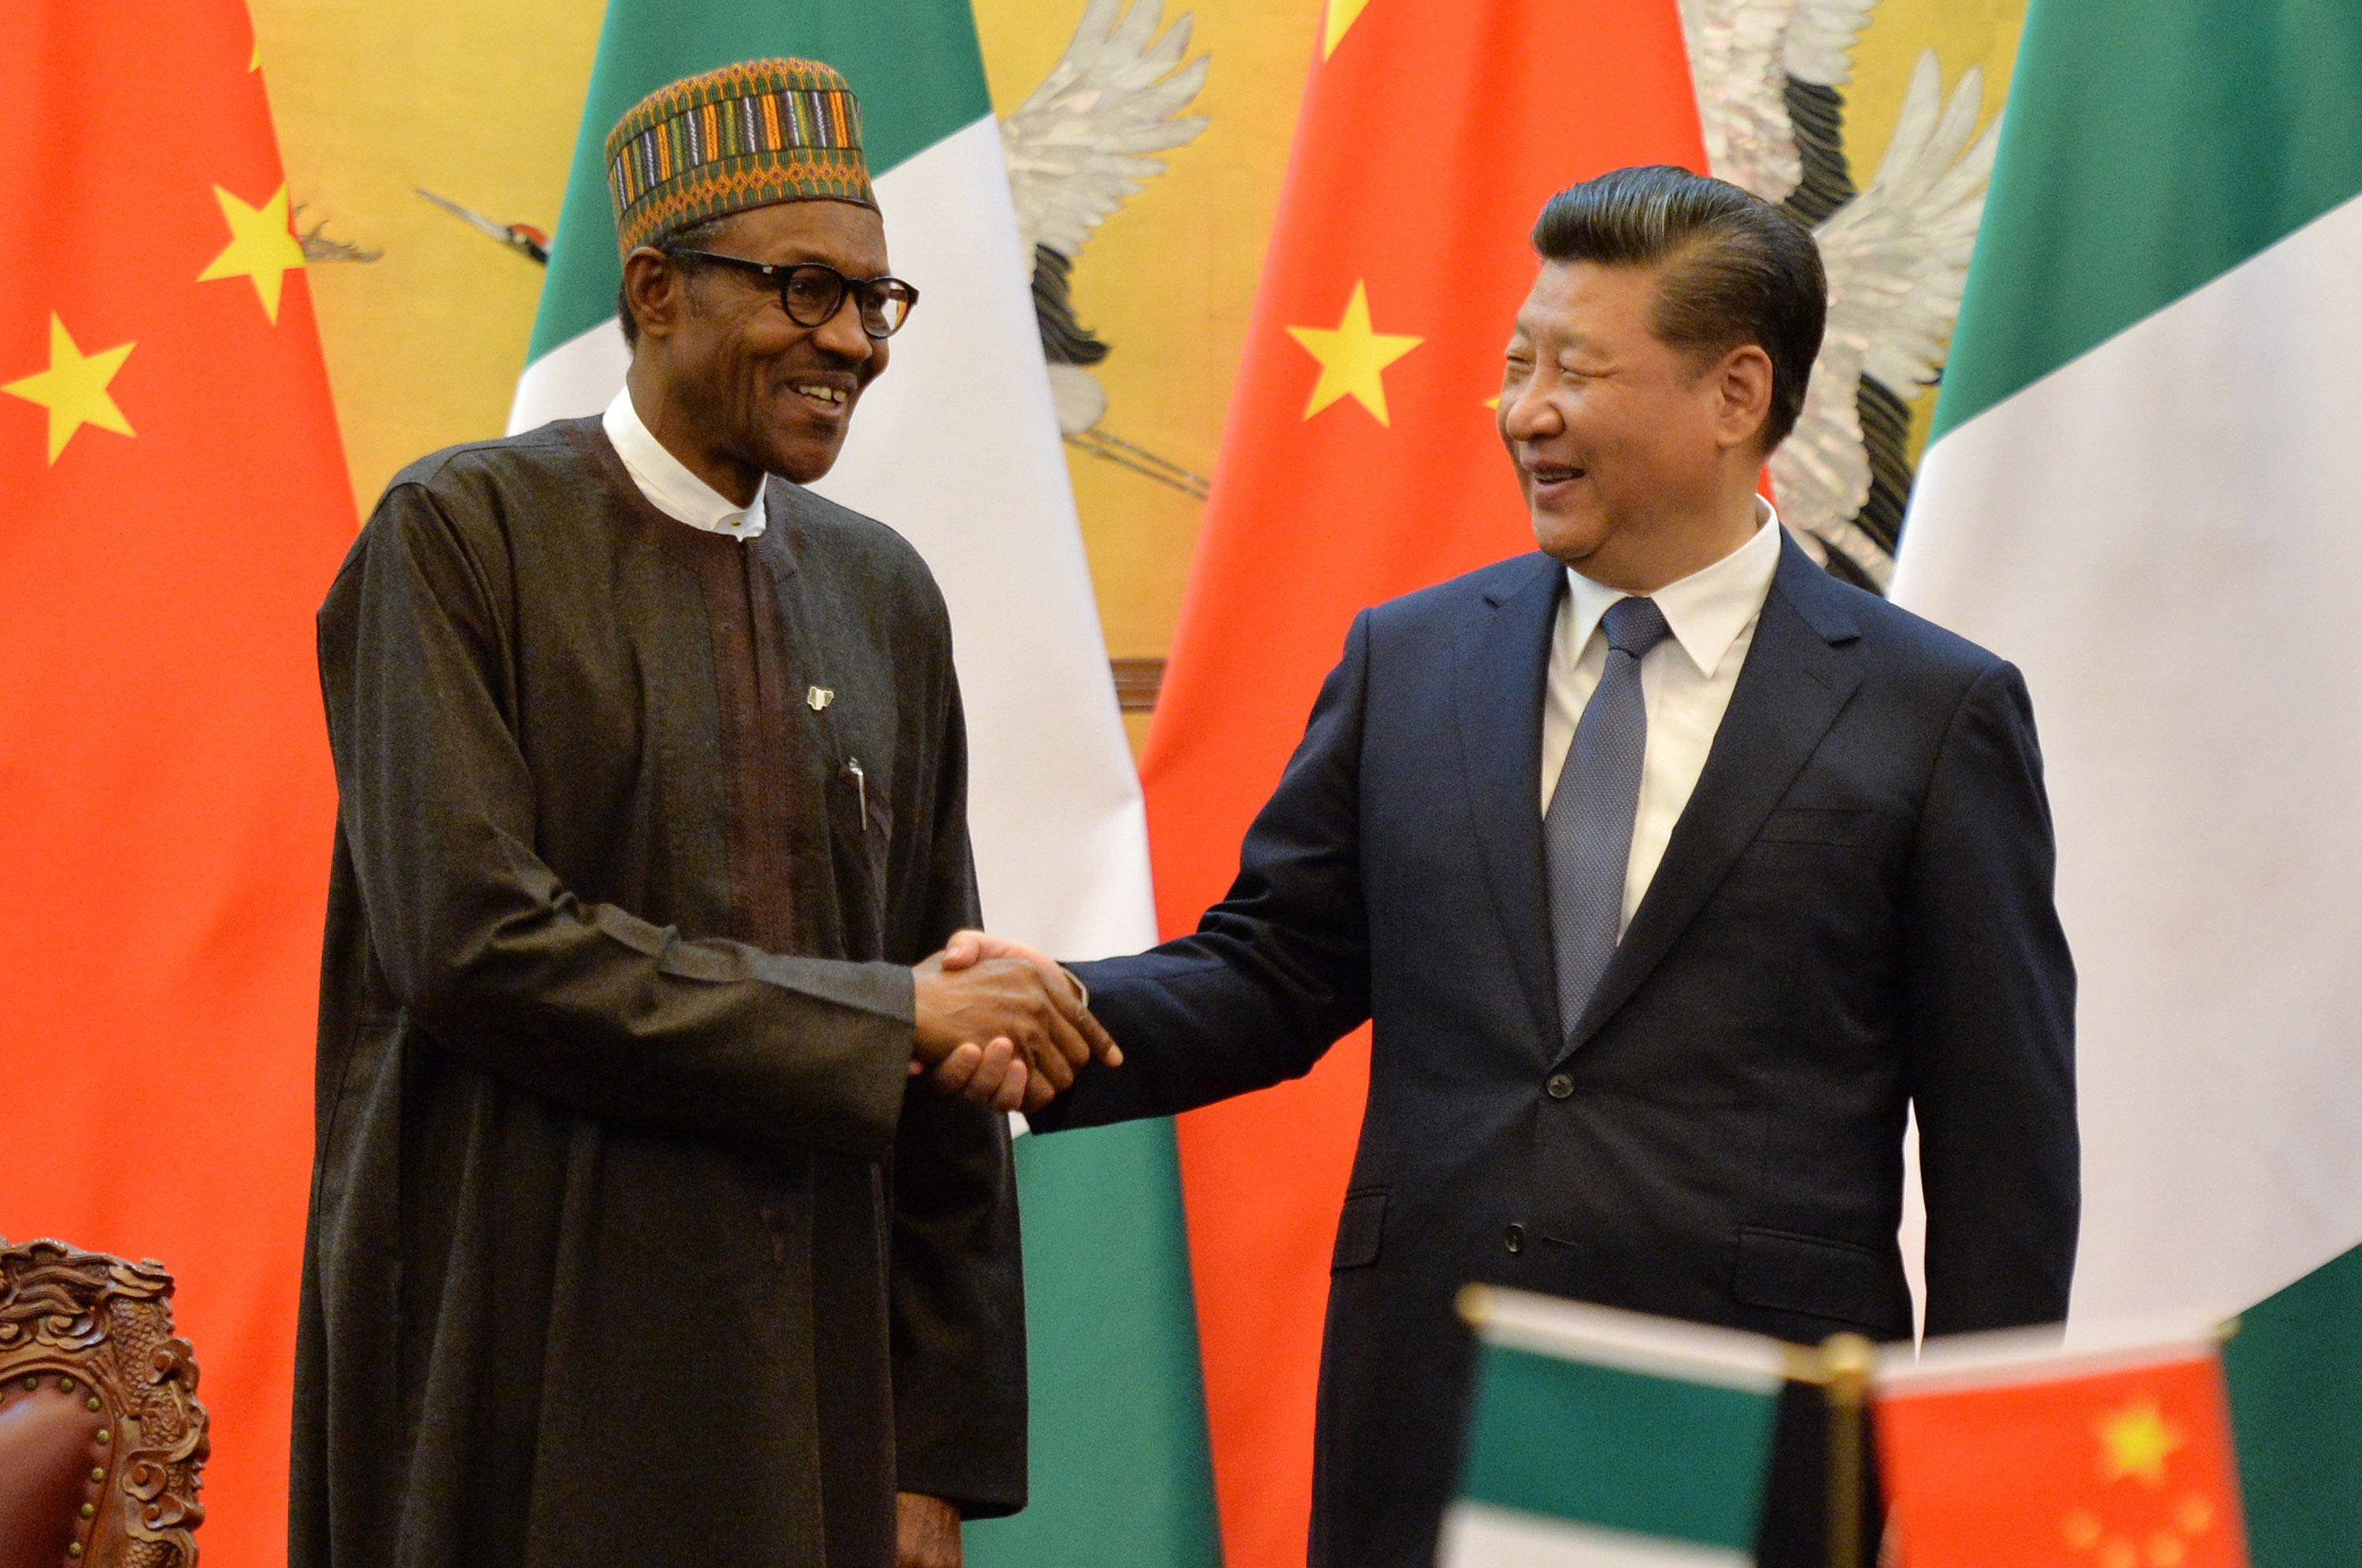 President Buhari dispels insinuations, says Chinese loans not a debt trap